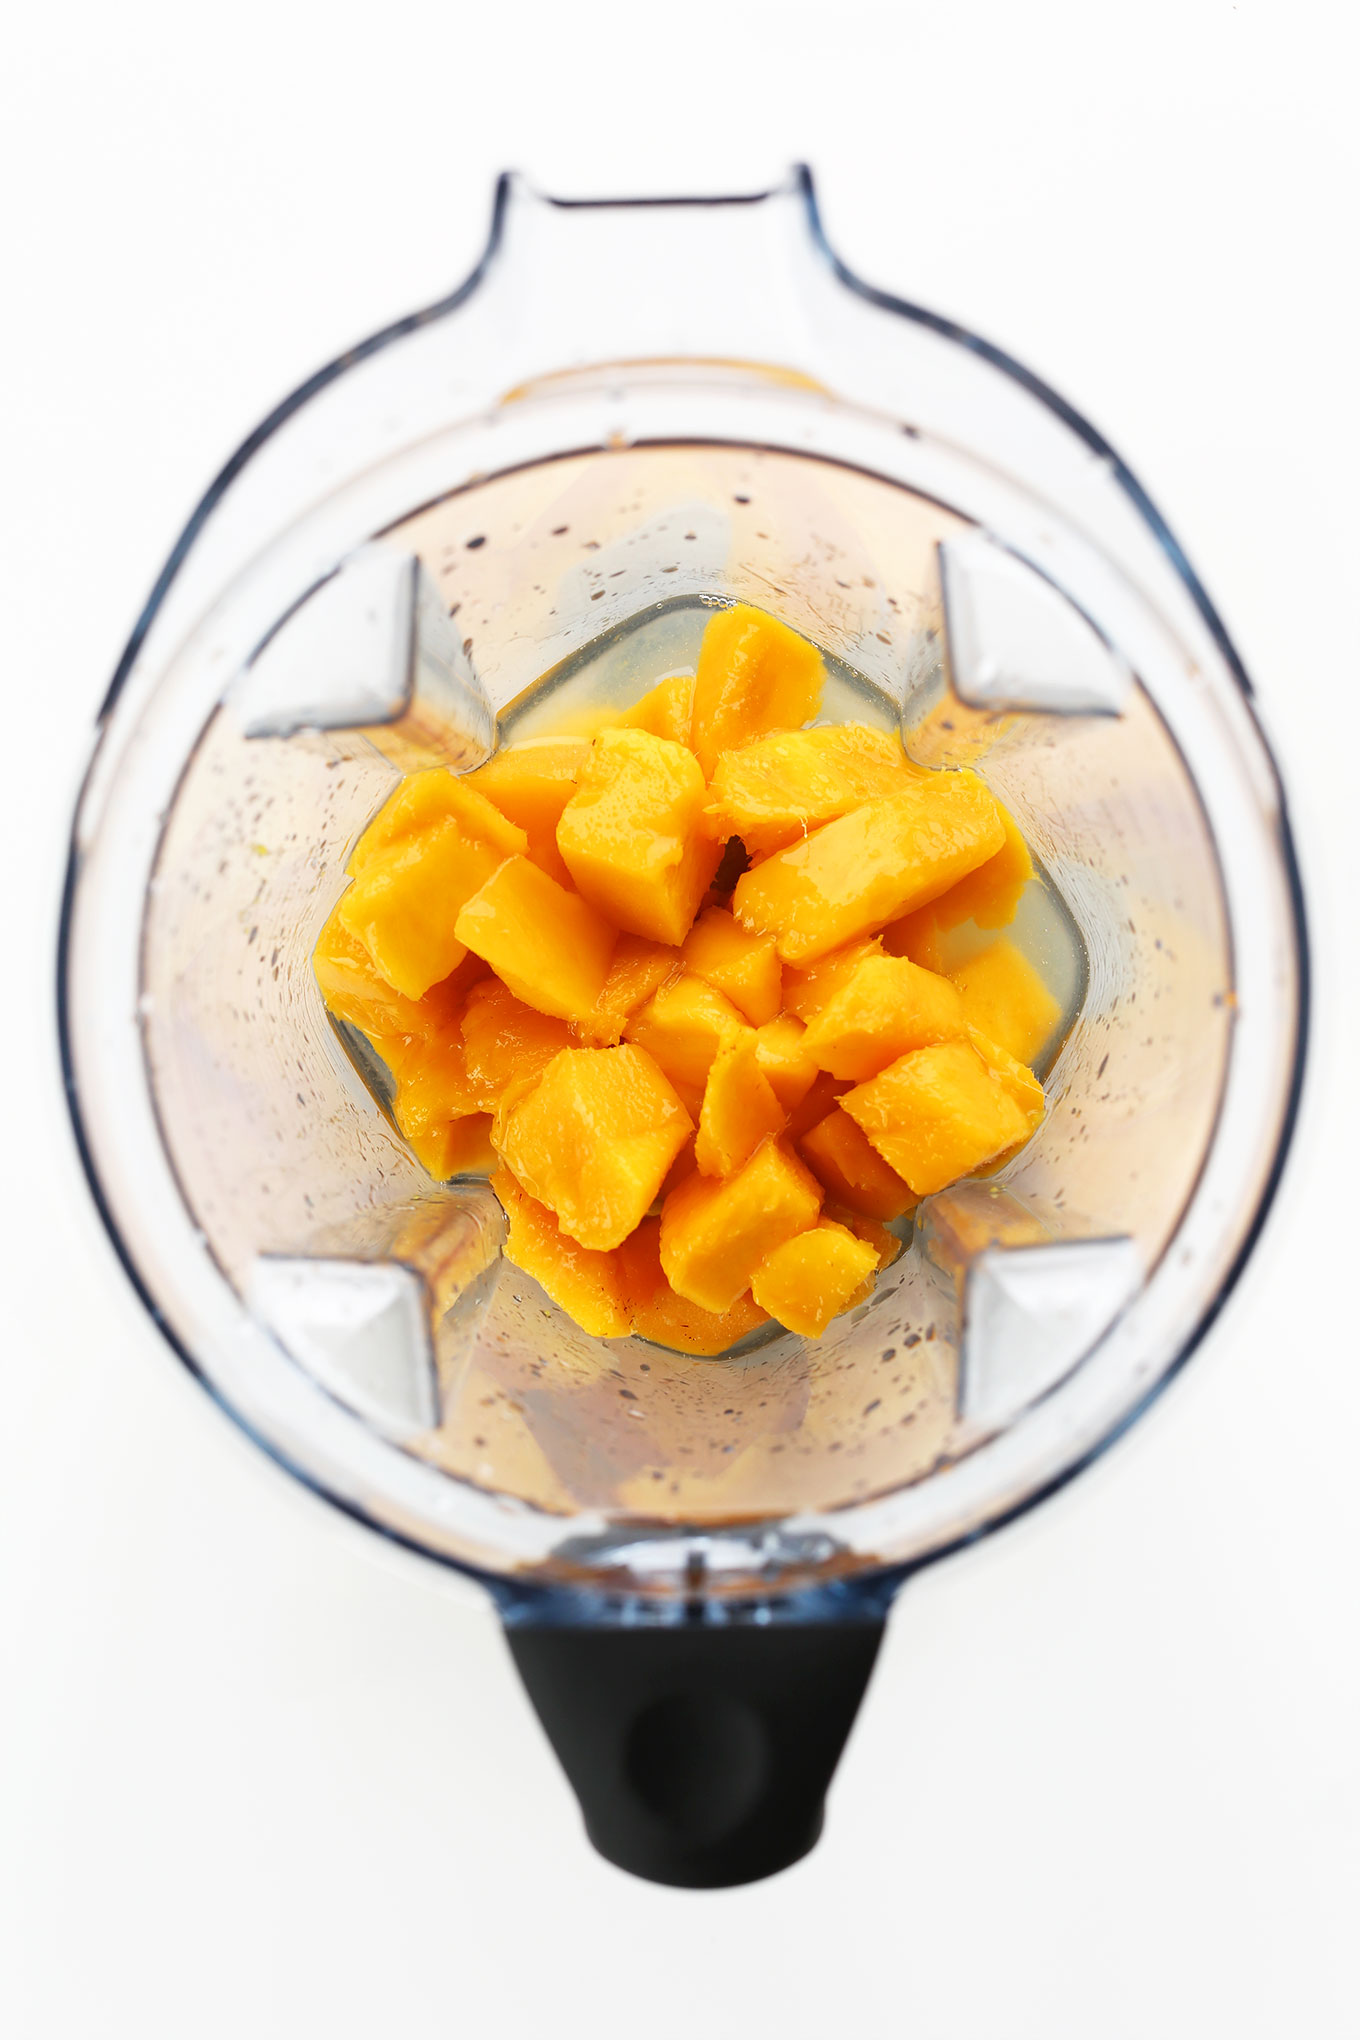 Blender filled with ingredients for making easy blended mango margaritas